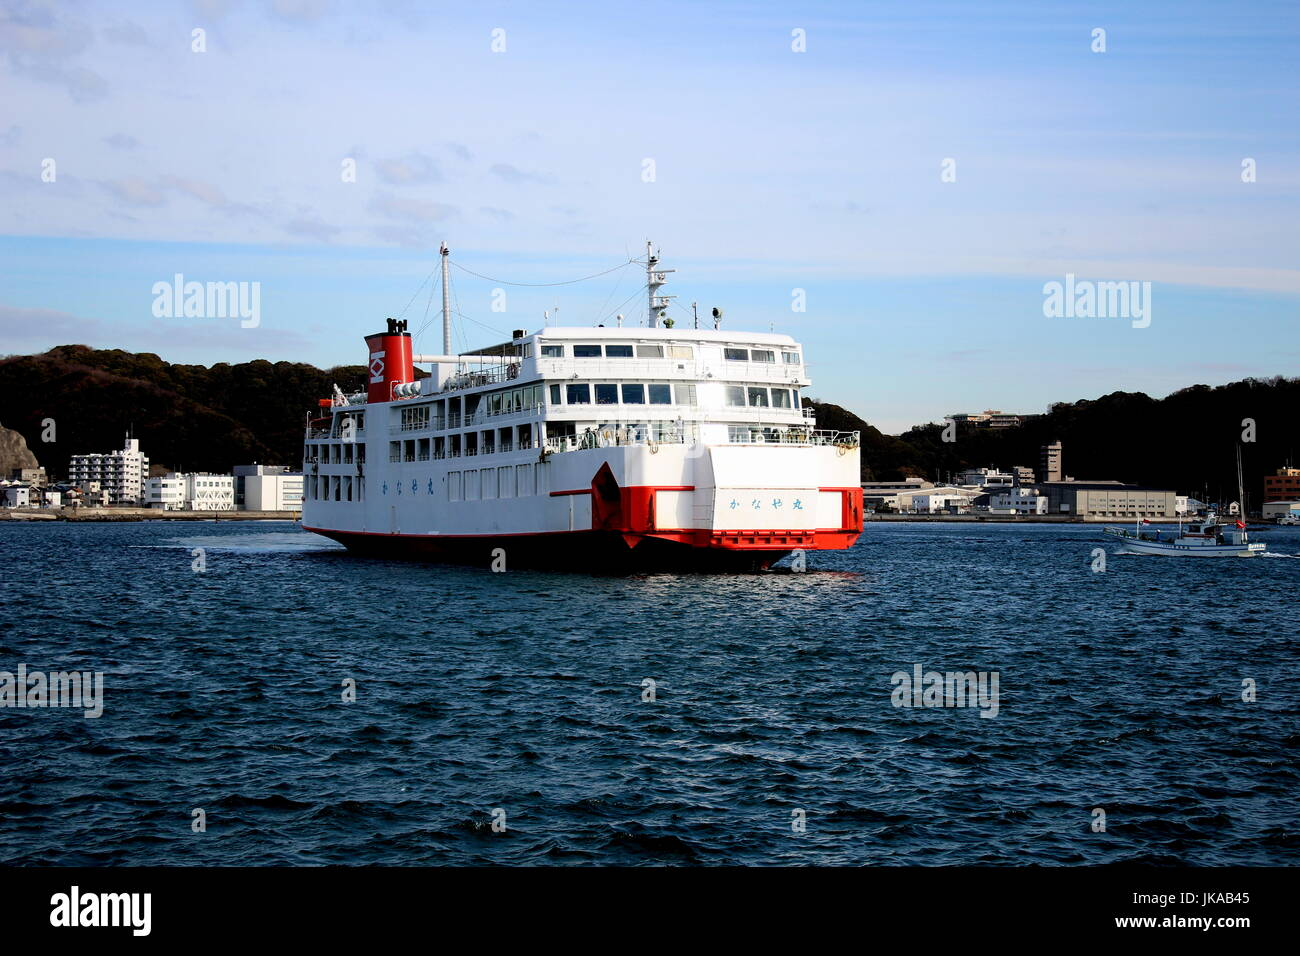 The Tokyo-Wan ferry docks in Kurihama.  The ferry connects the Miura and Boso peninsulas near the mouth of Tokyo - Stock Image